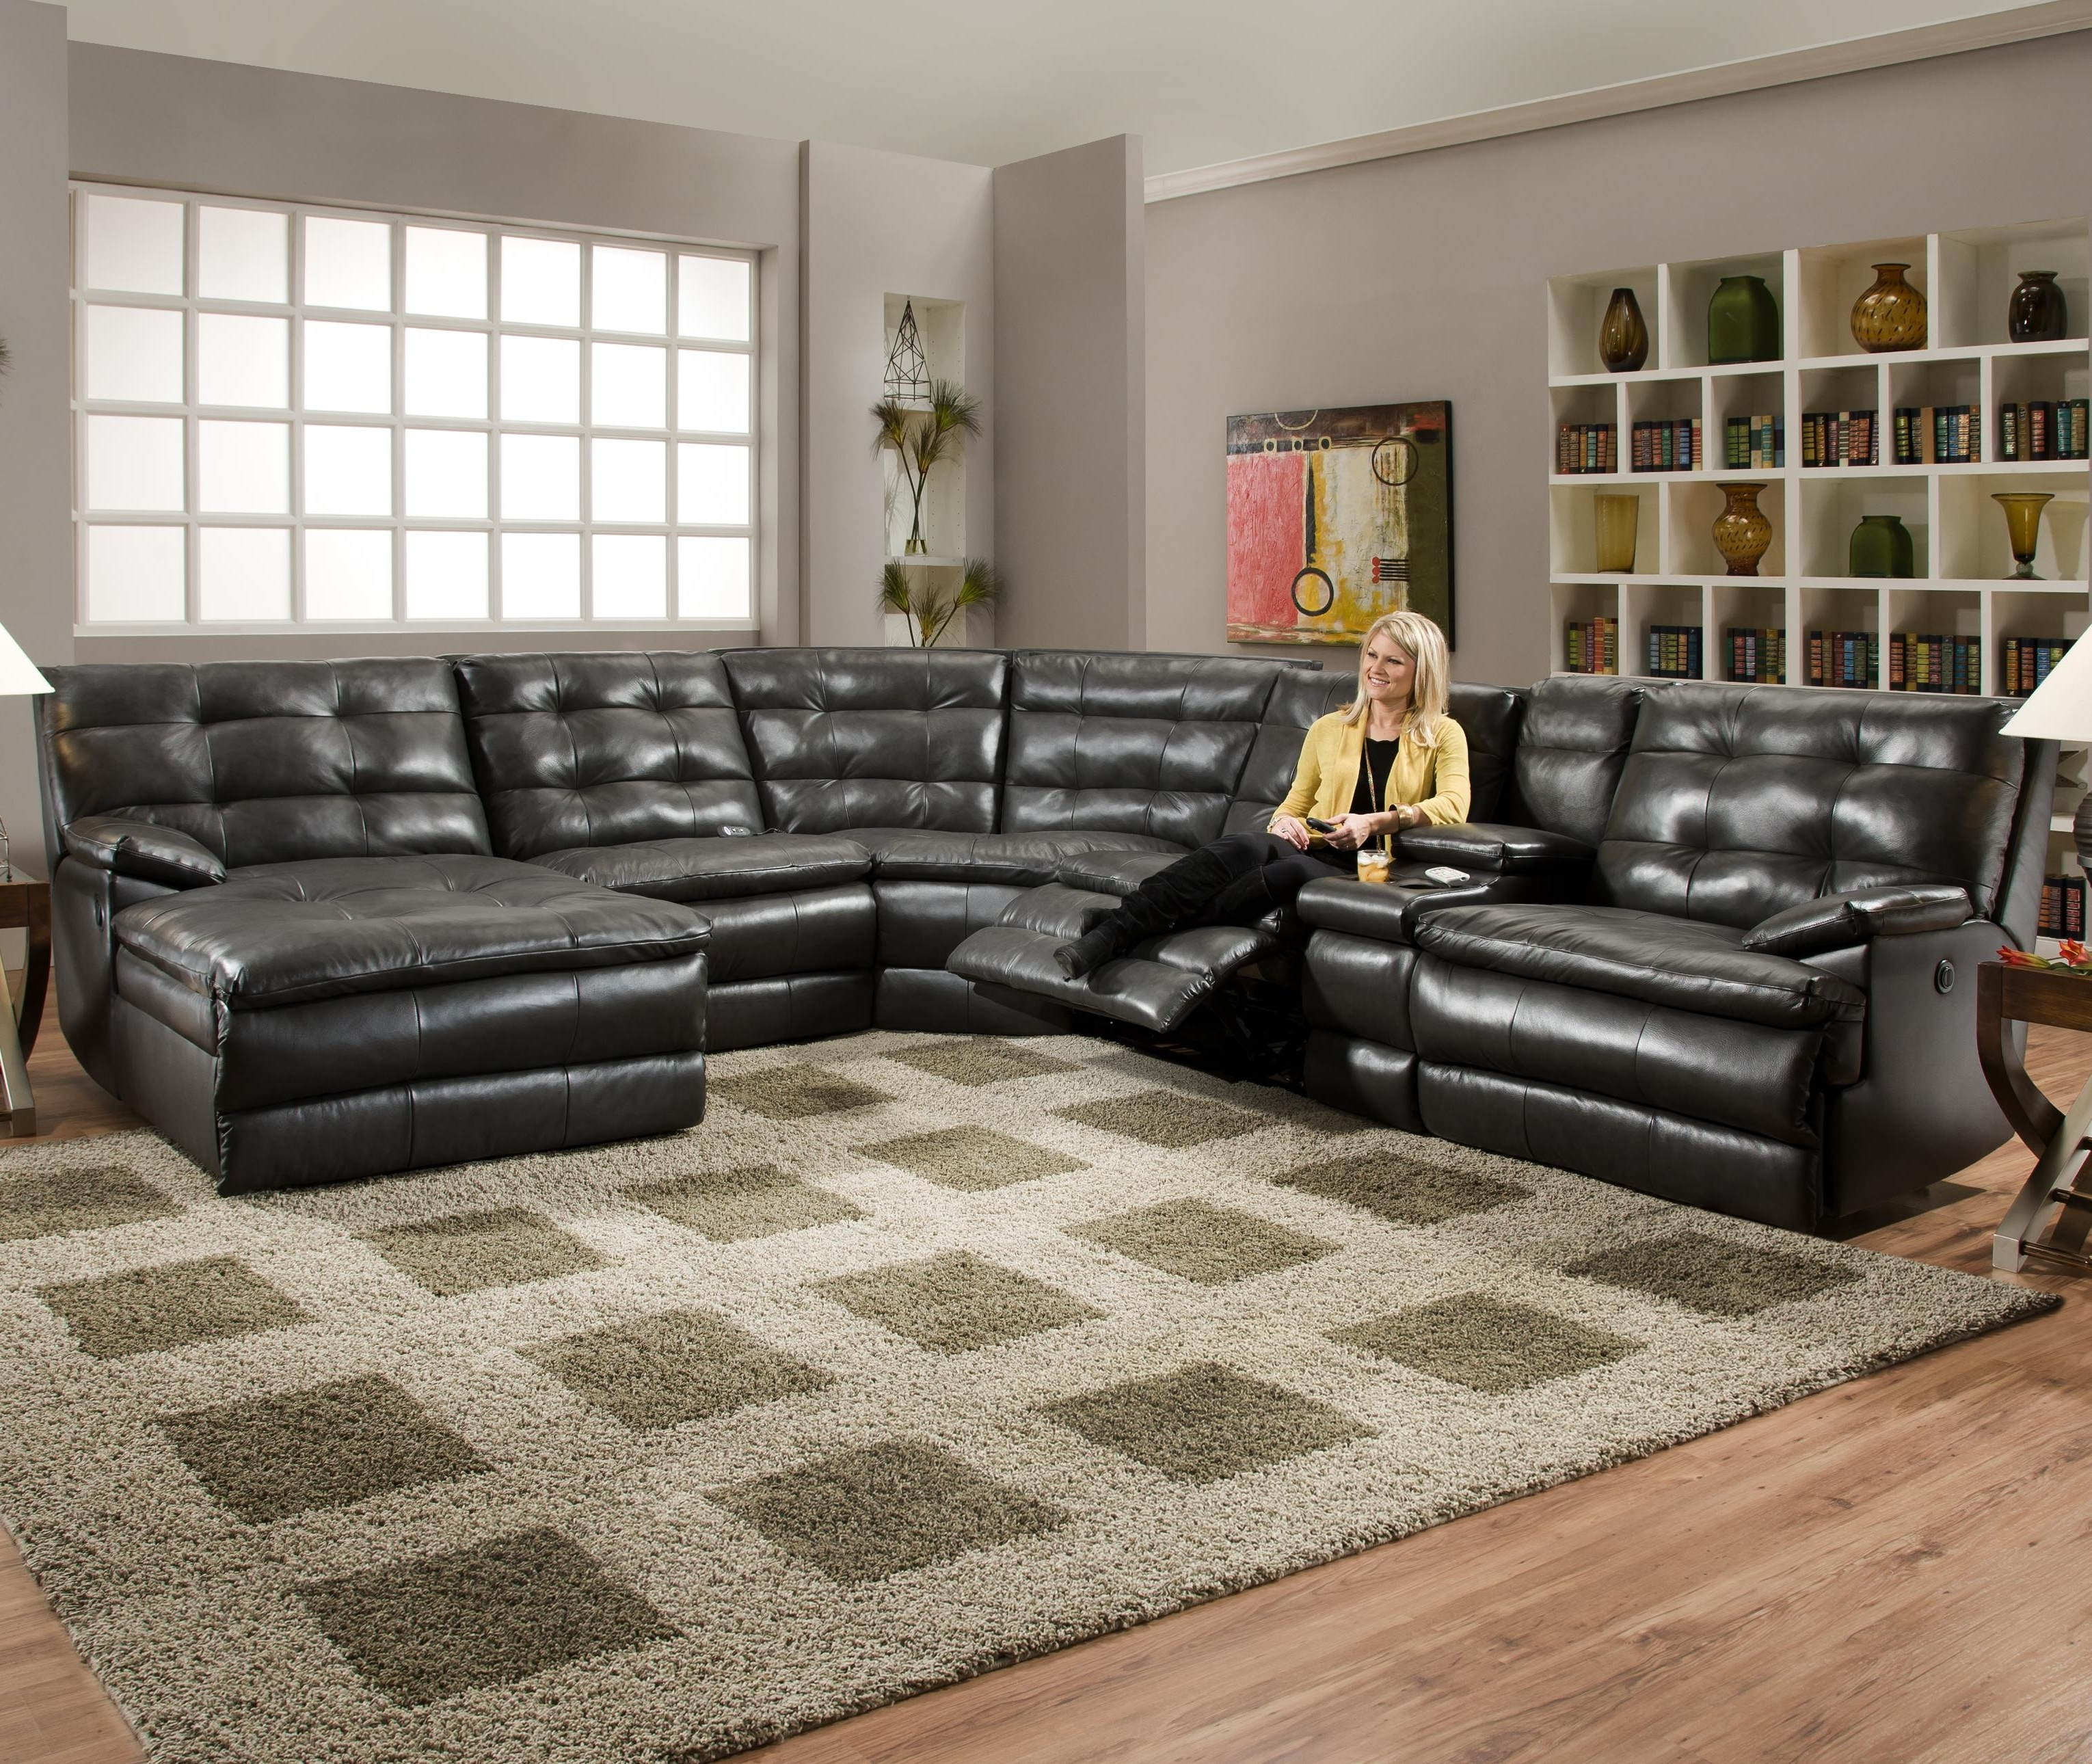 Popular Large Sectional Sofas With Regard To Luxurious Tufted Leather Sectional Sofa In Classy Black Color With (View 13 of 20)